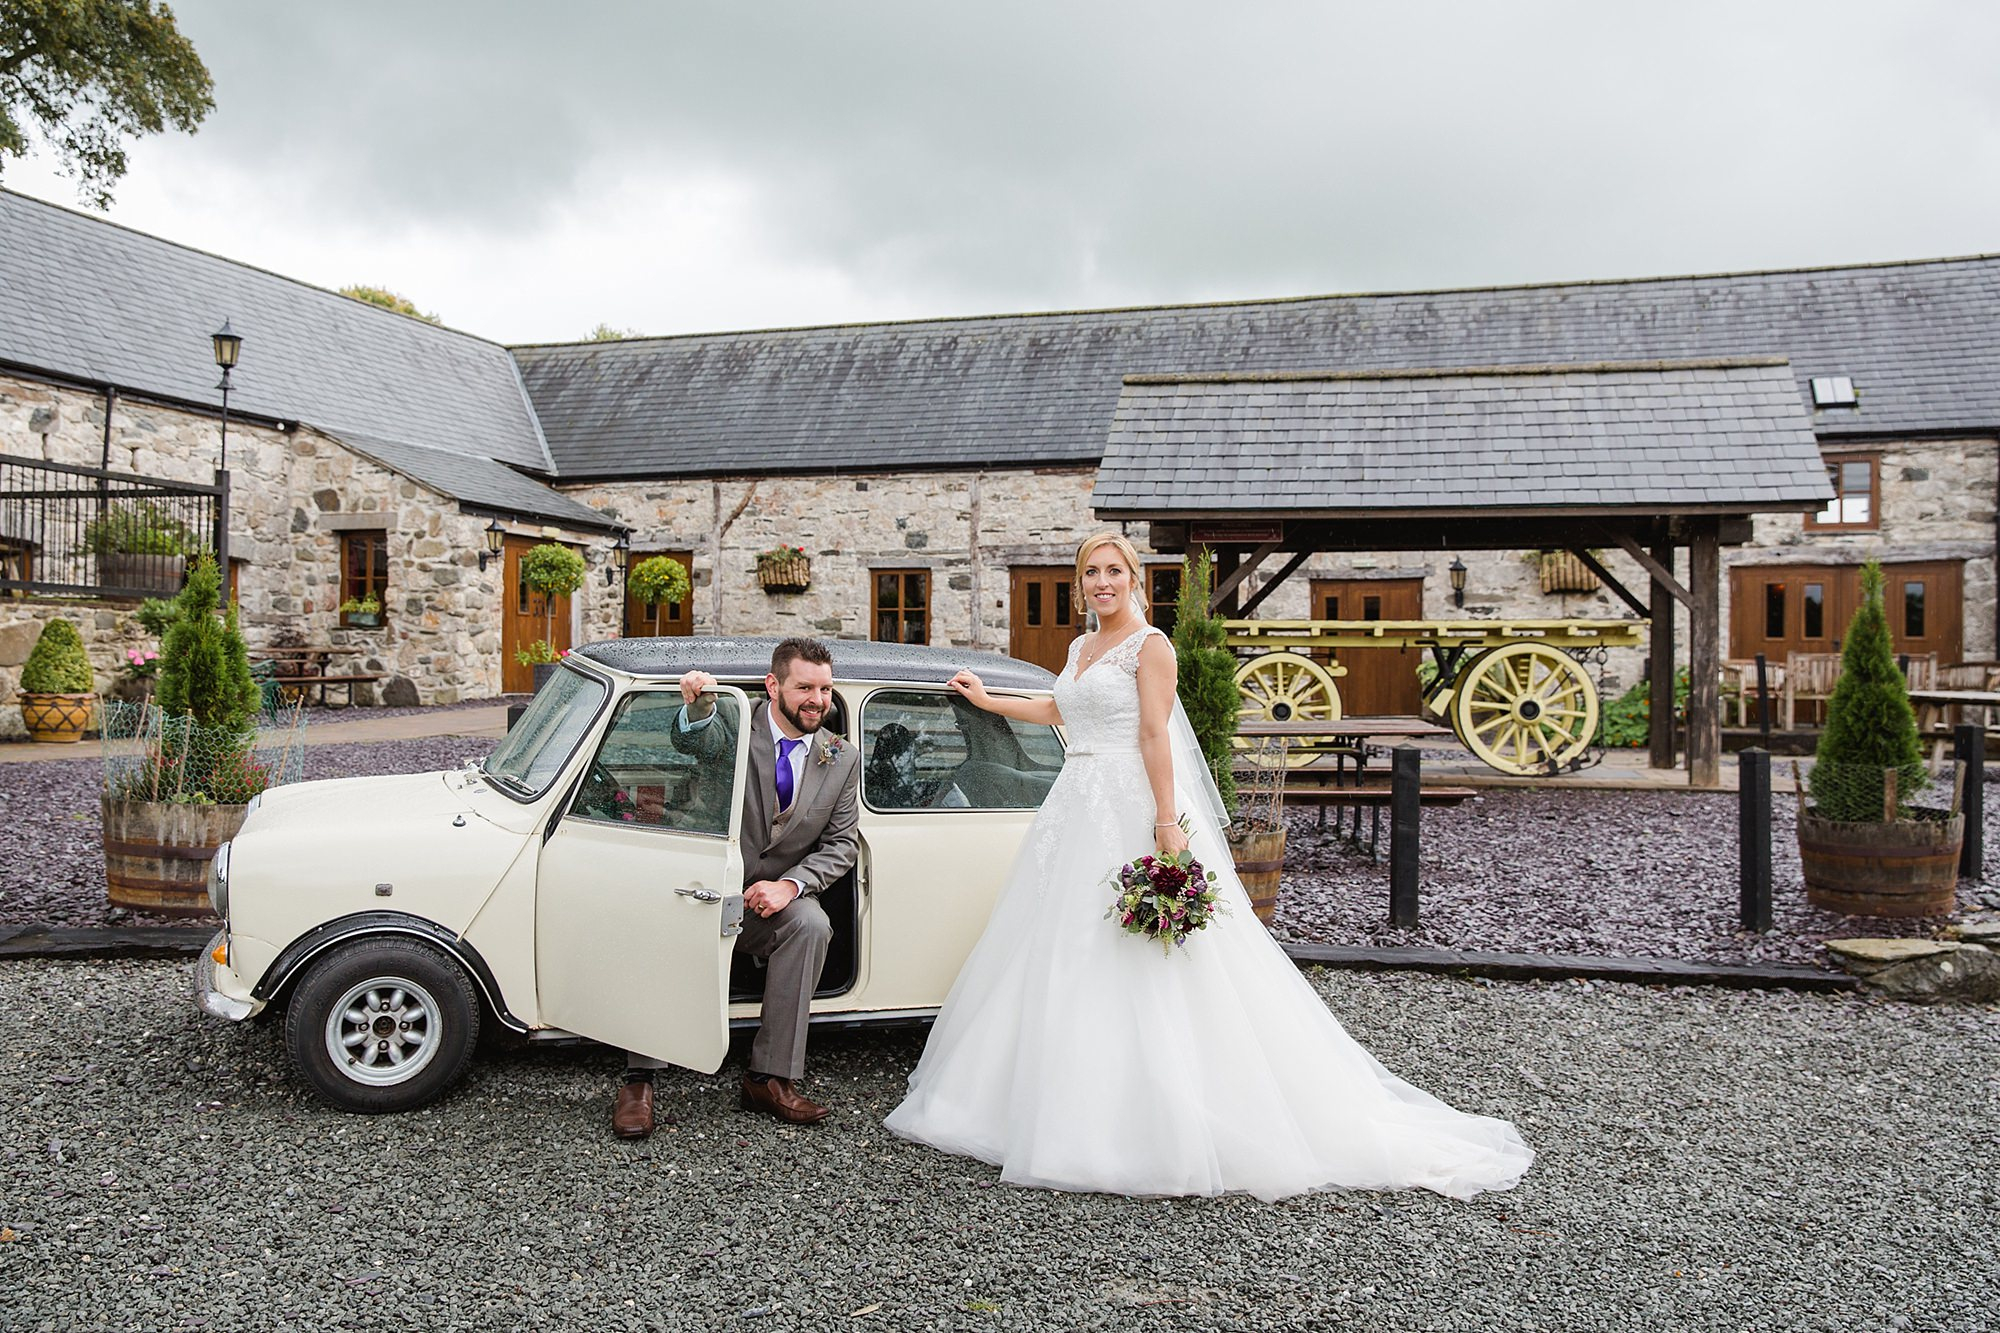 A fun wedding portrait of bride and groom with classic Mini Cooper